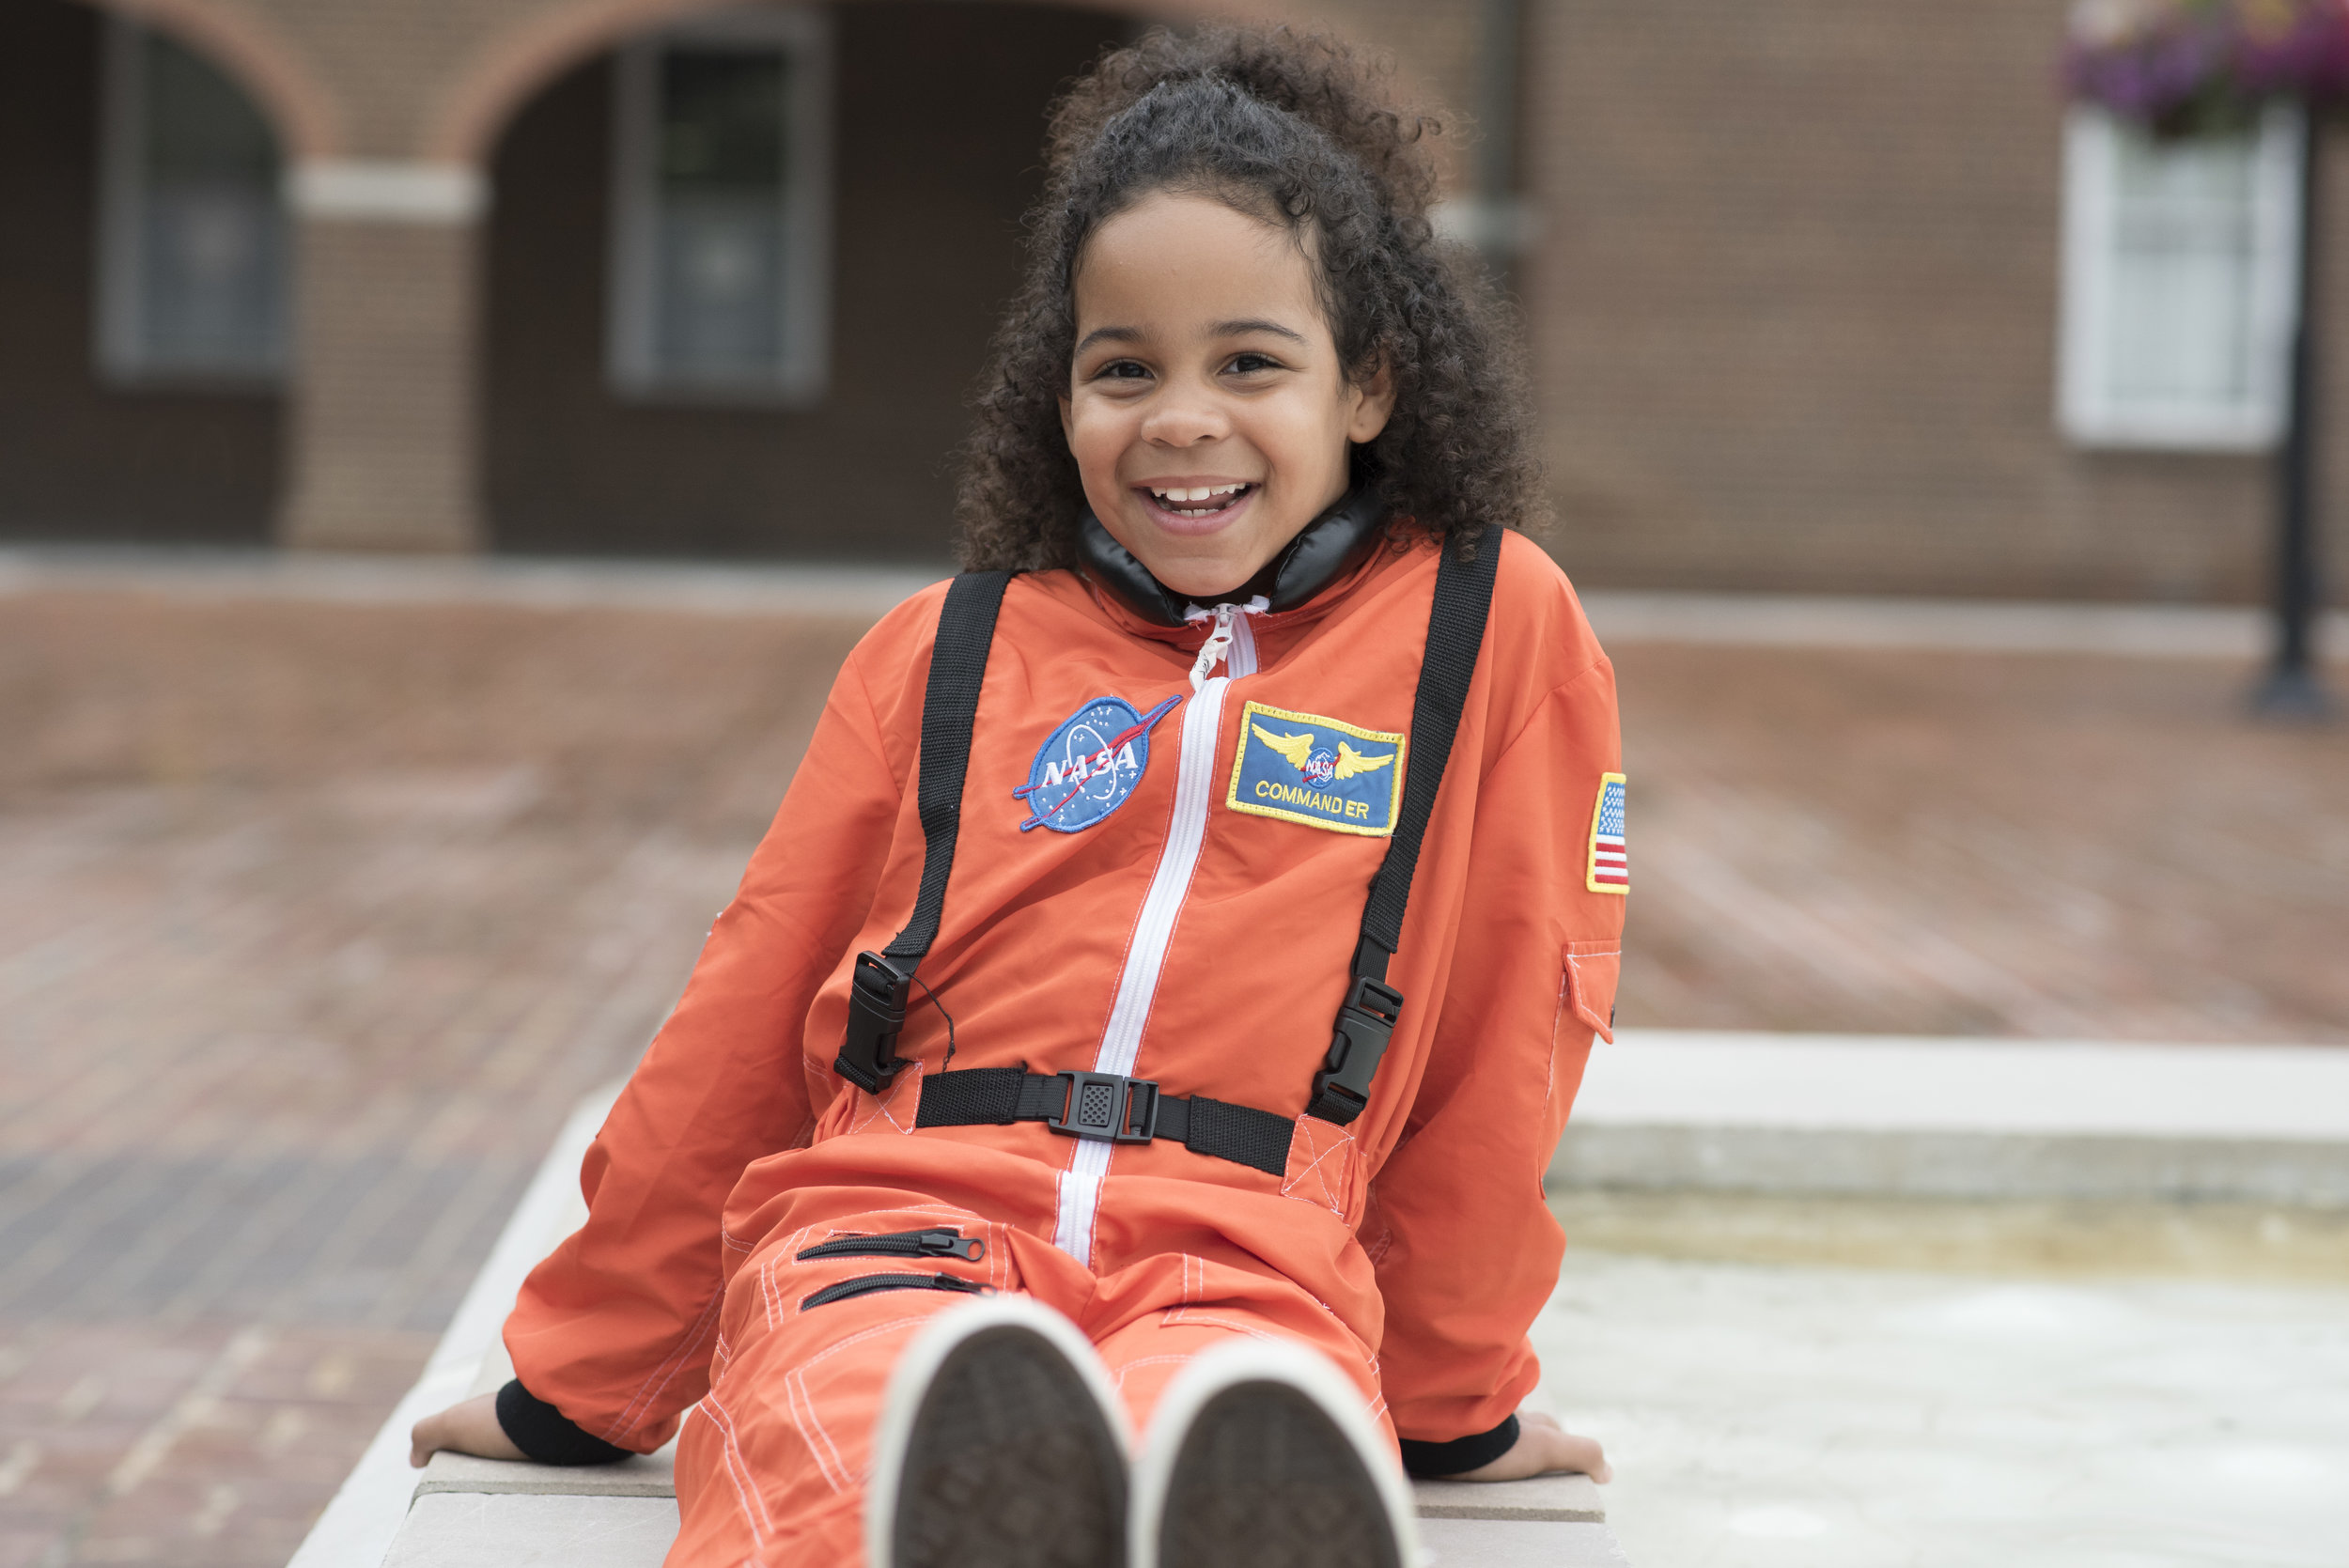 Portrait of Havana, a 7 year old activist, in her astronaut suit, in the location she delivered a speech at a Moms Demand Action rally.